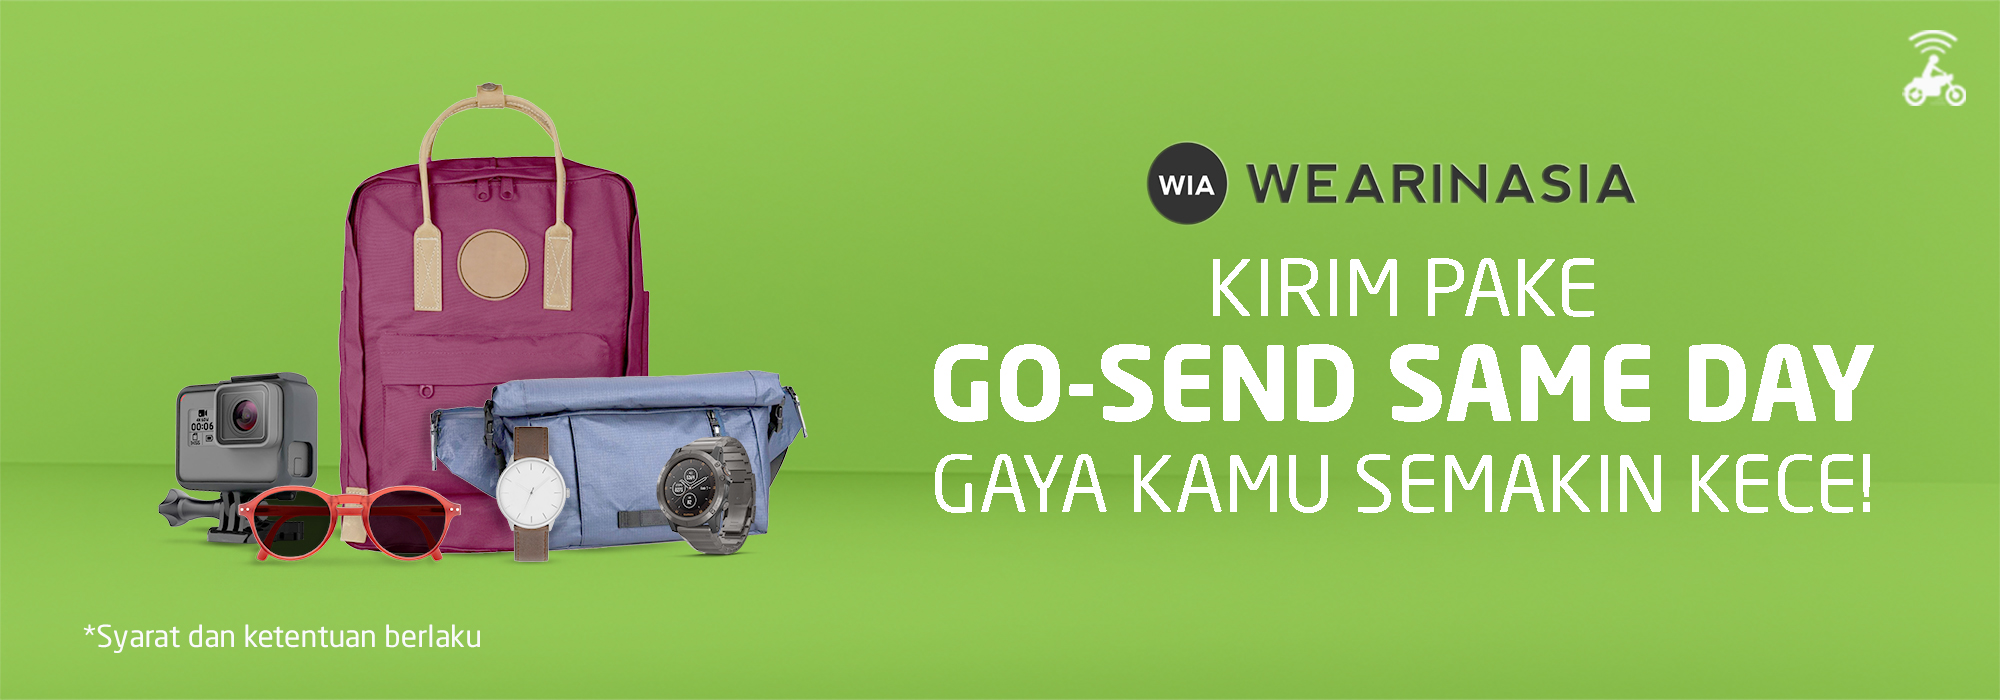 Promo GO-SEND di WEARINASIA, Gratis Ongkir Same Day Delivery!